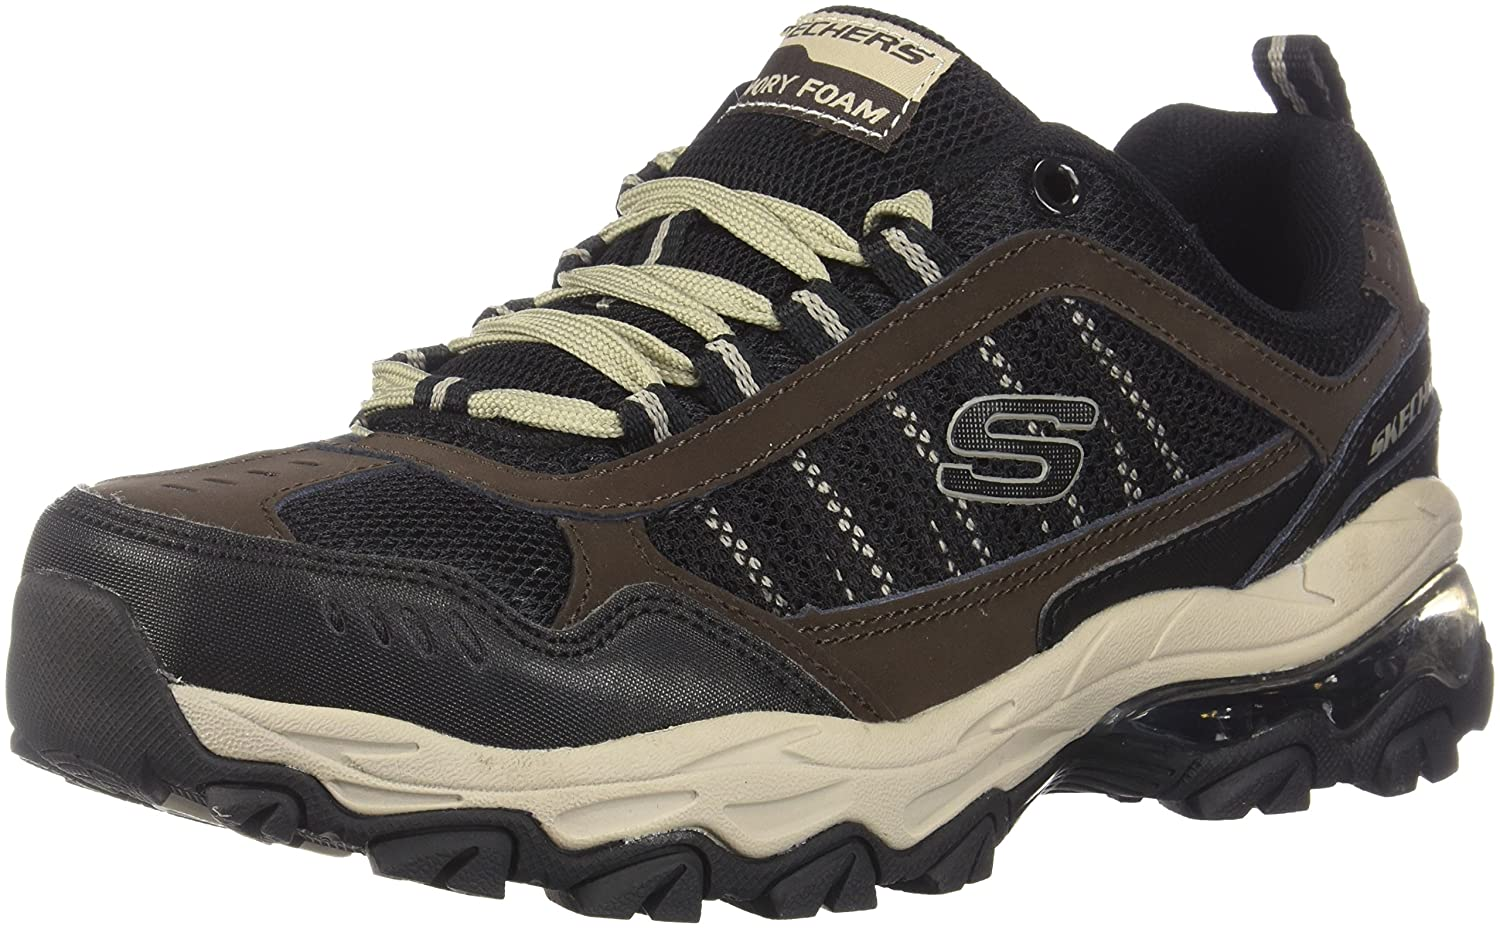 Skechers Men's M-FIT AIR Walking Shoes